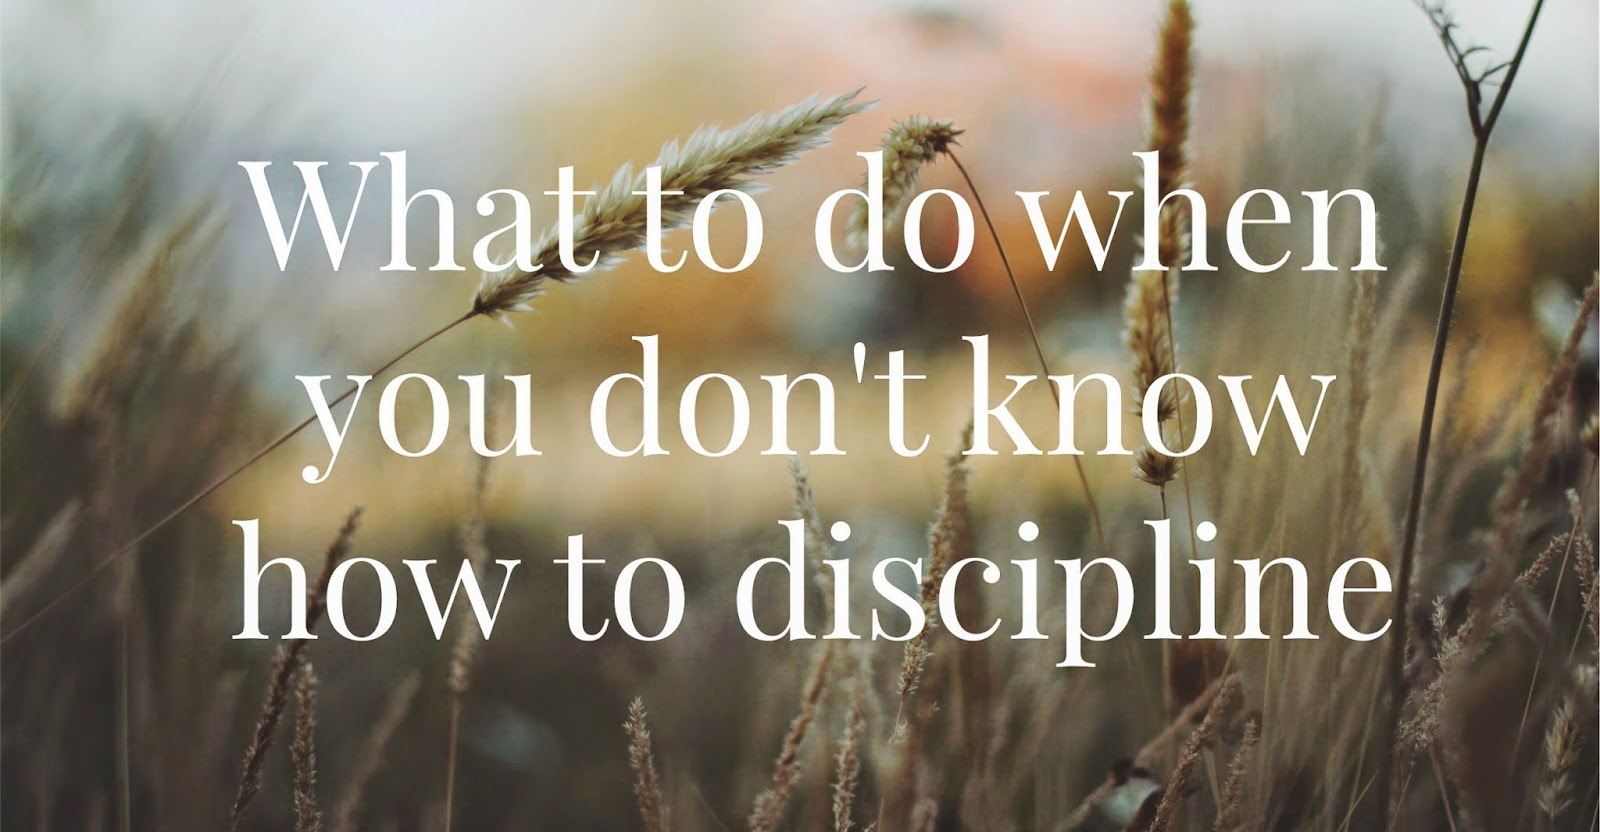 What to do when you don't know how to discipline [from the jensens blog]